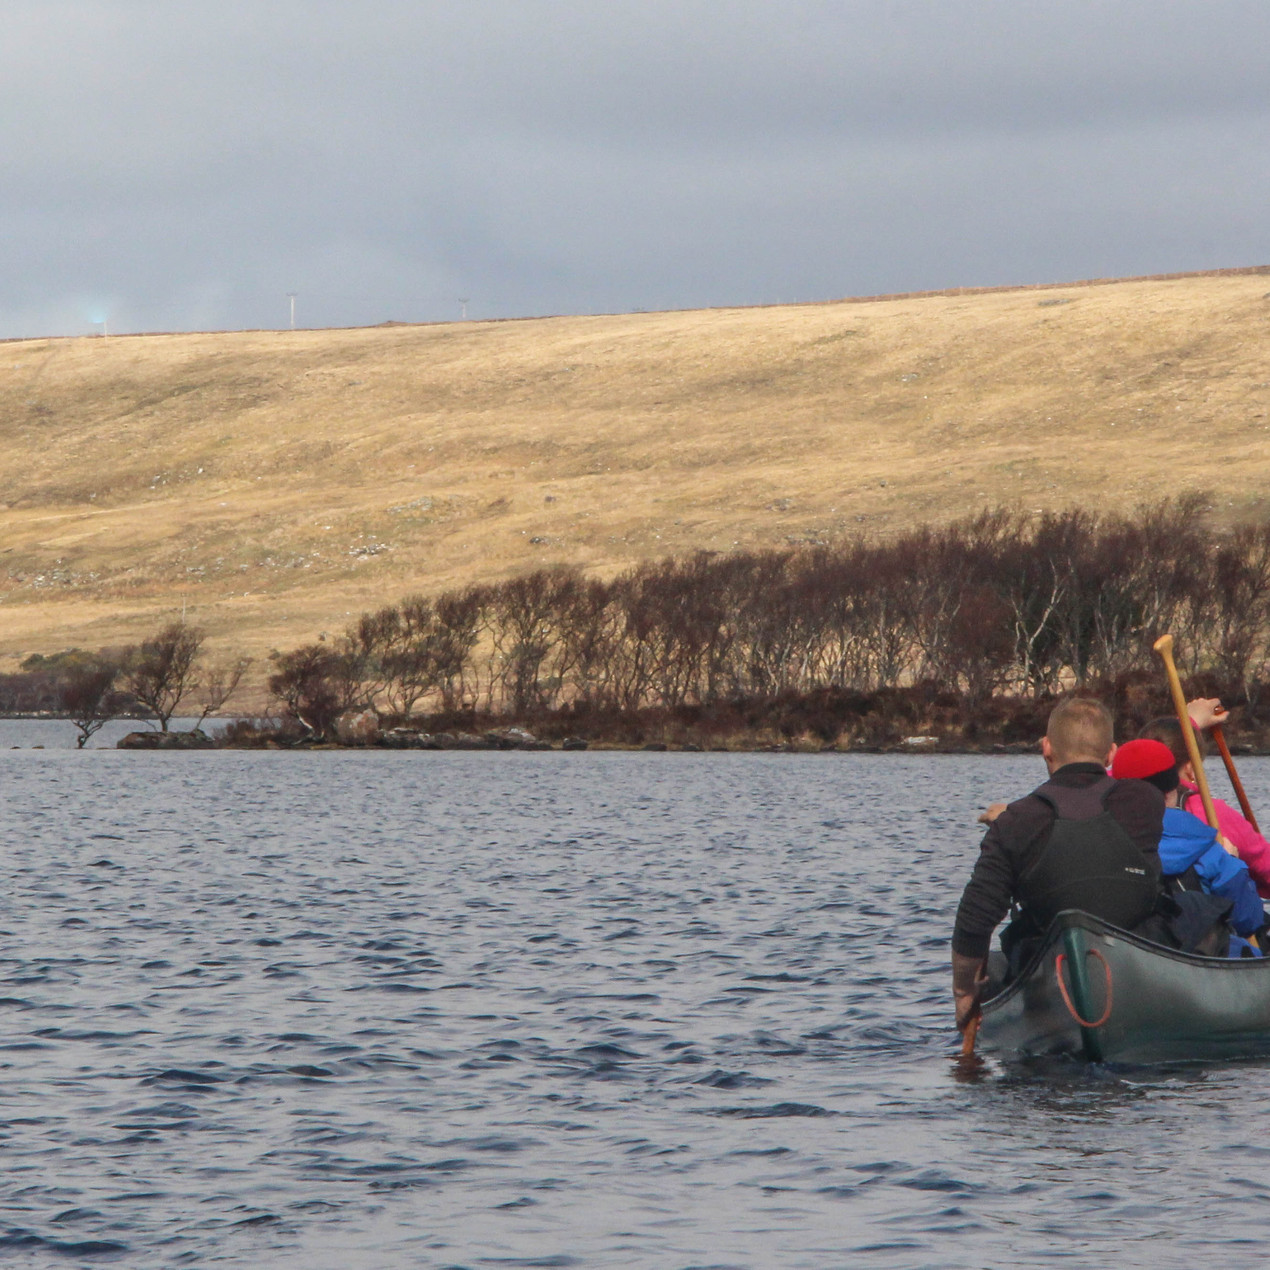 Approaching the horizon line that marks the second portage